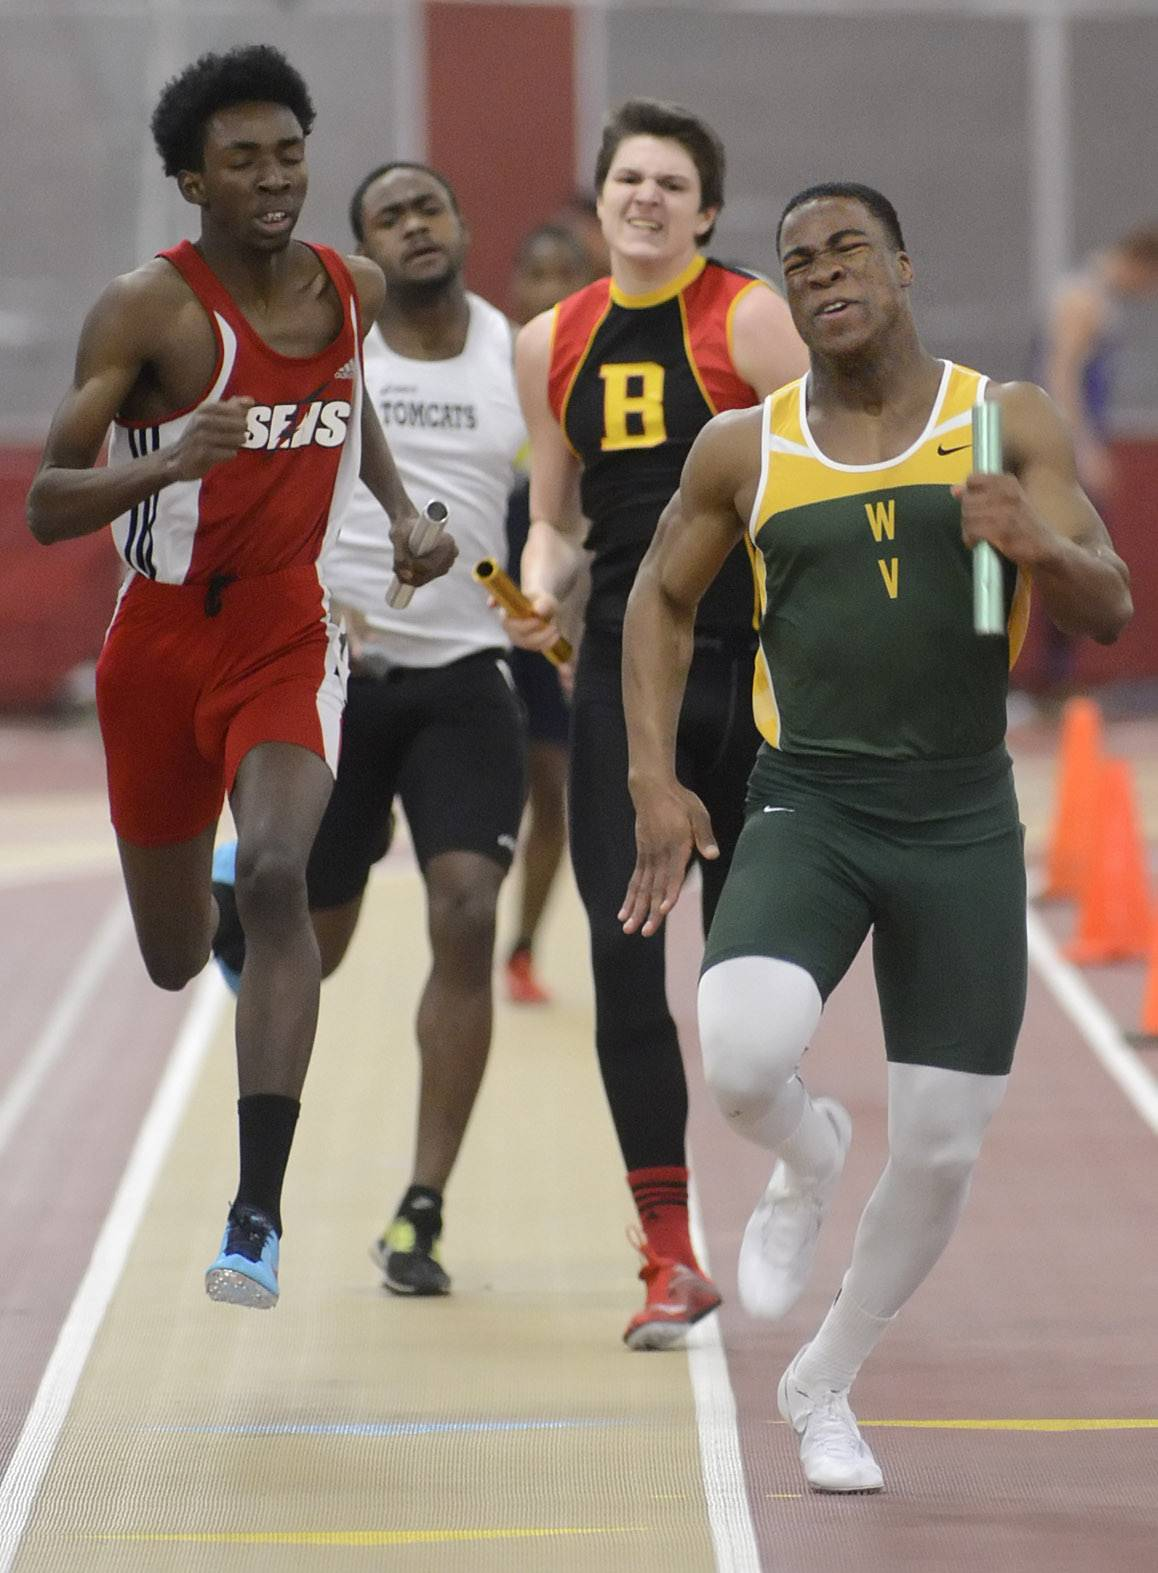 Waubonsie Valley's Justin Rich gives it his all as he approaches the finish line to take first place for his team in the 4 x 200 meter relay at the Upstate Eight Conference in Batavia on Friday.